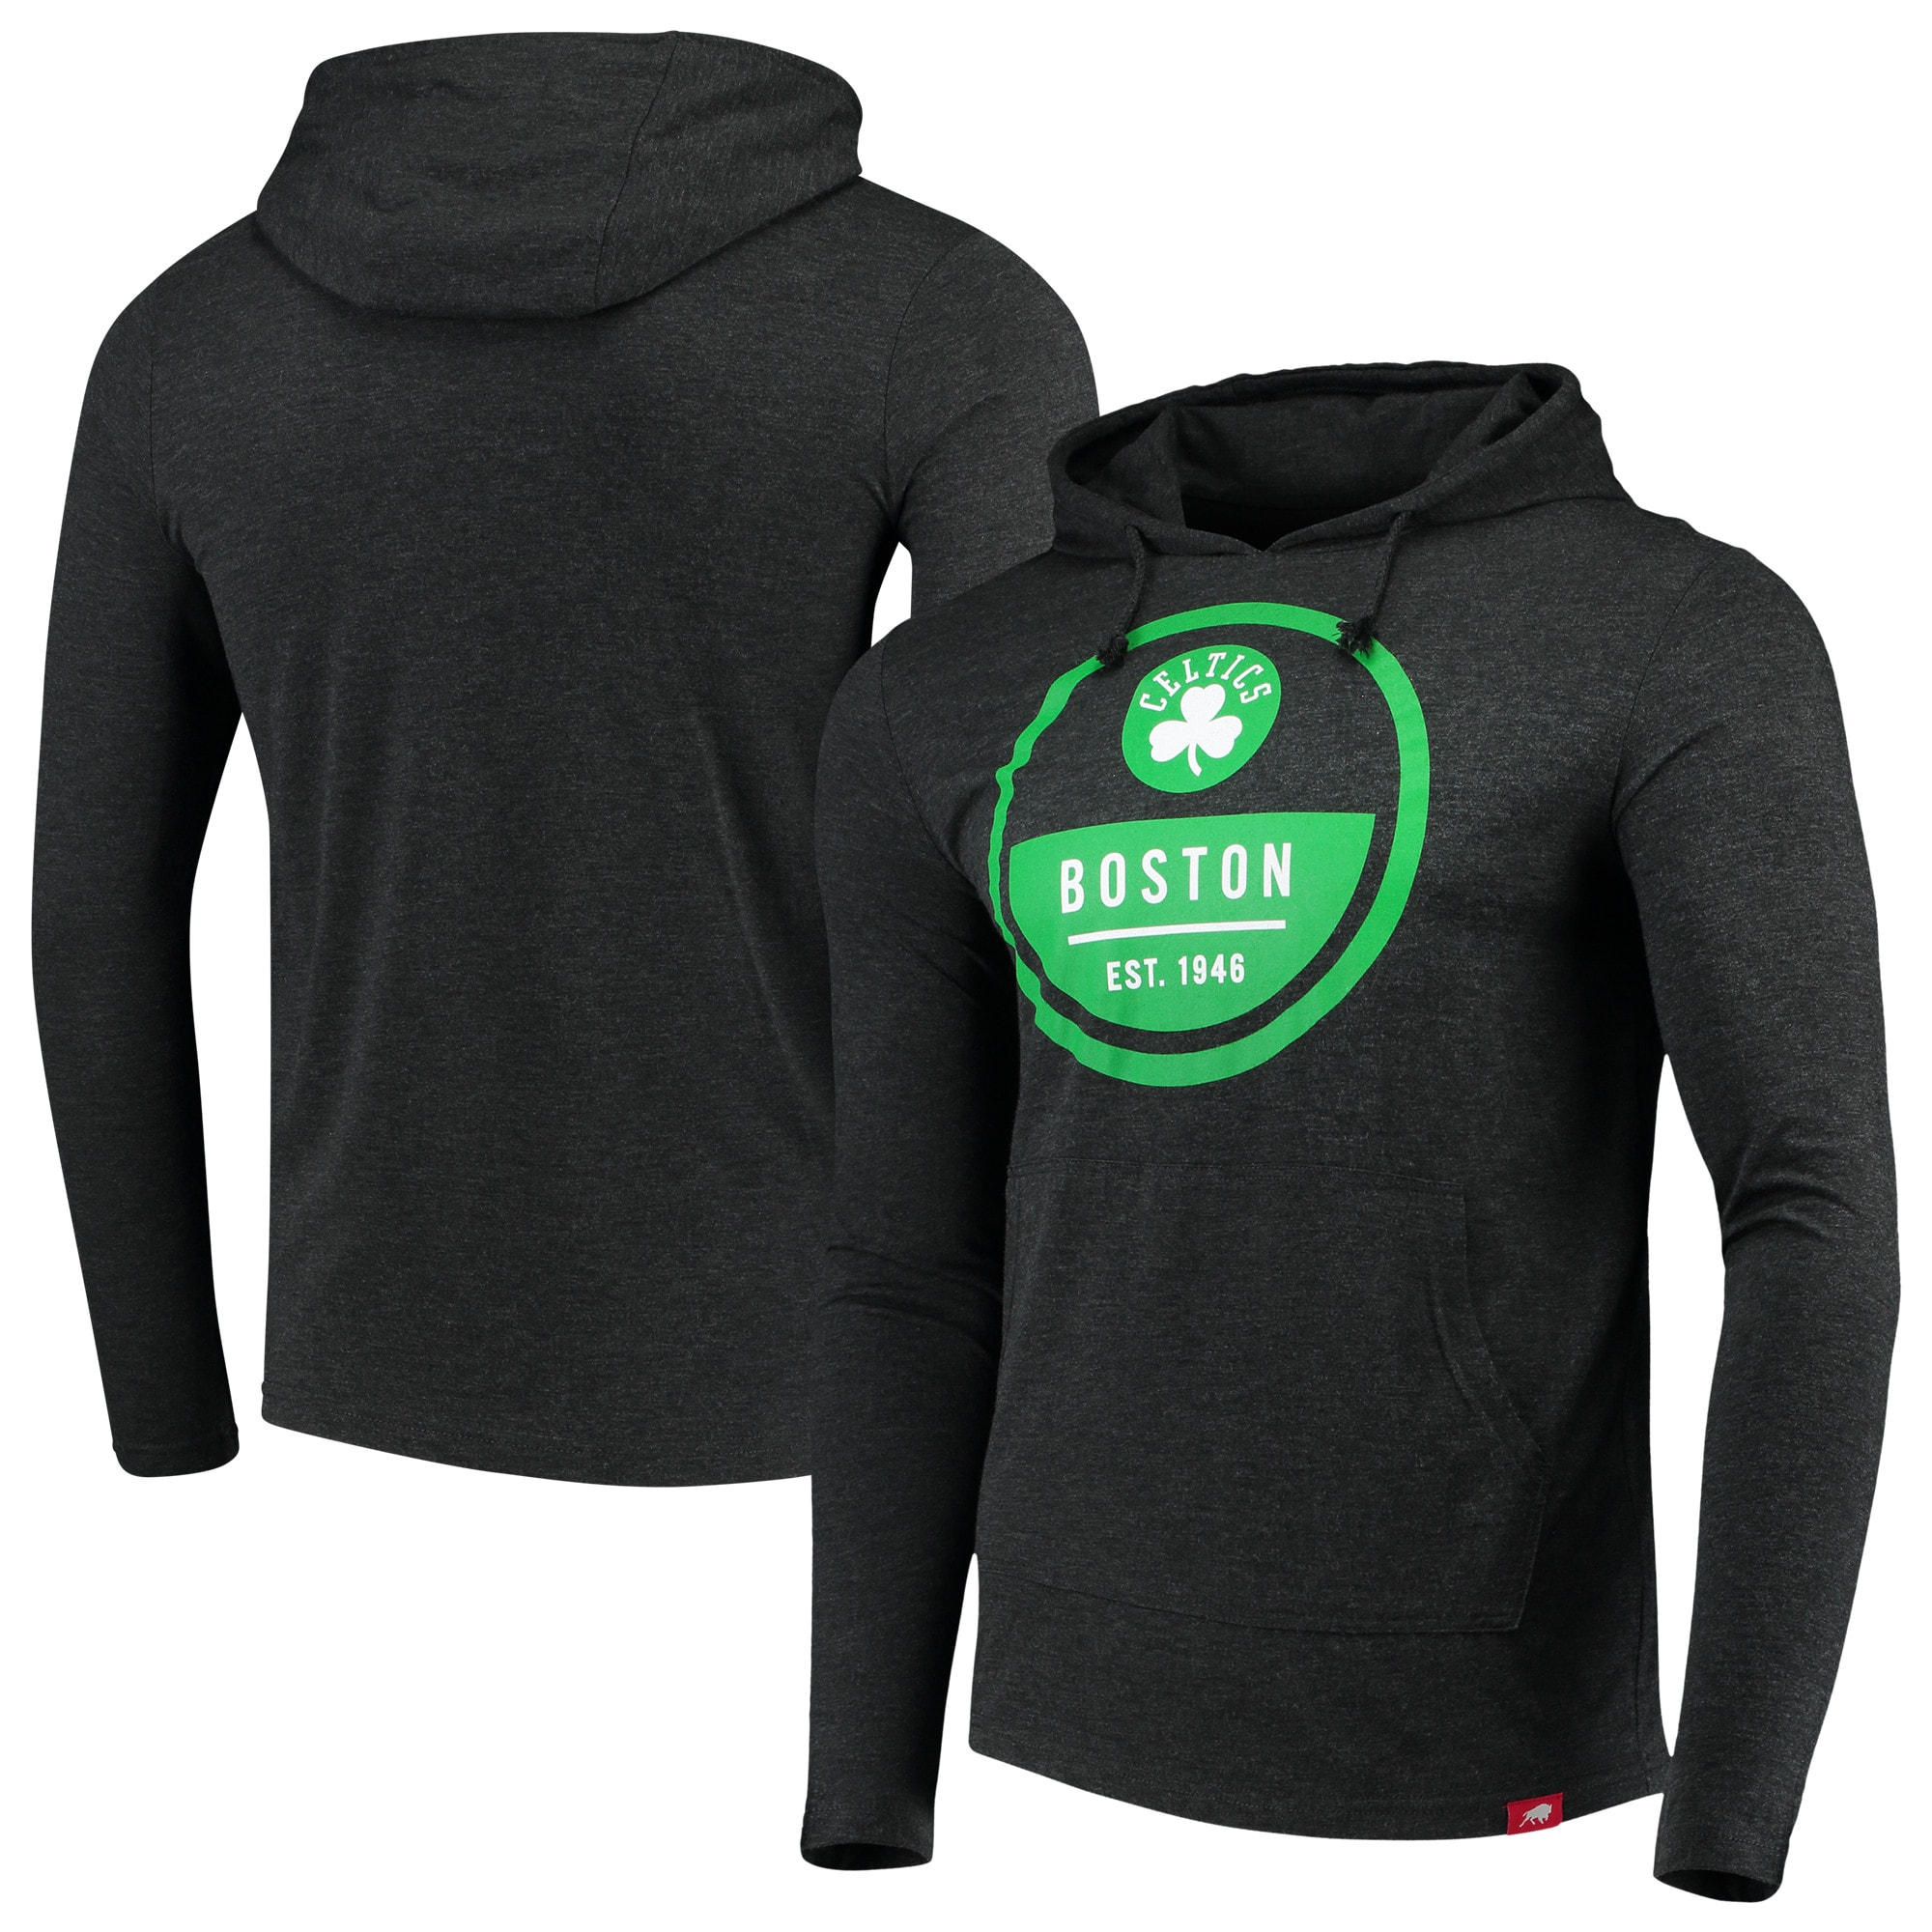 Boston Celtics Sportiqe Rowan Tri-Blend Jersey Hoodie - Heathered Black